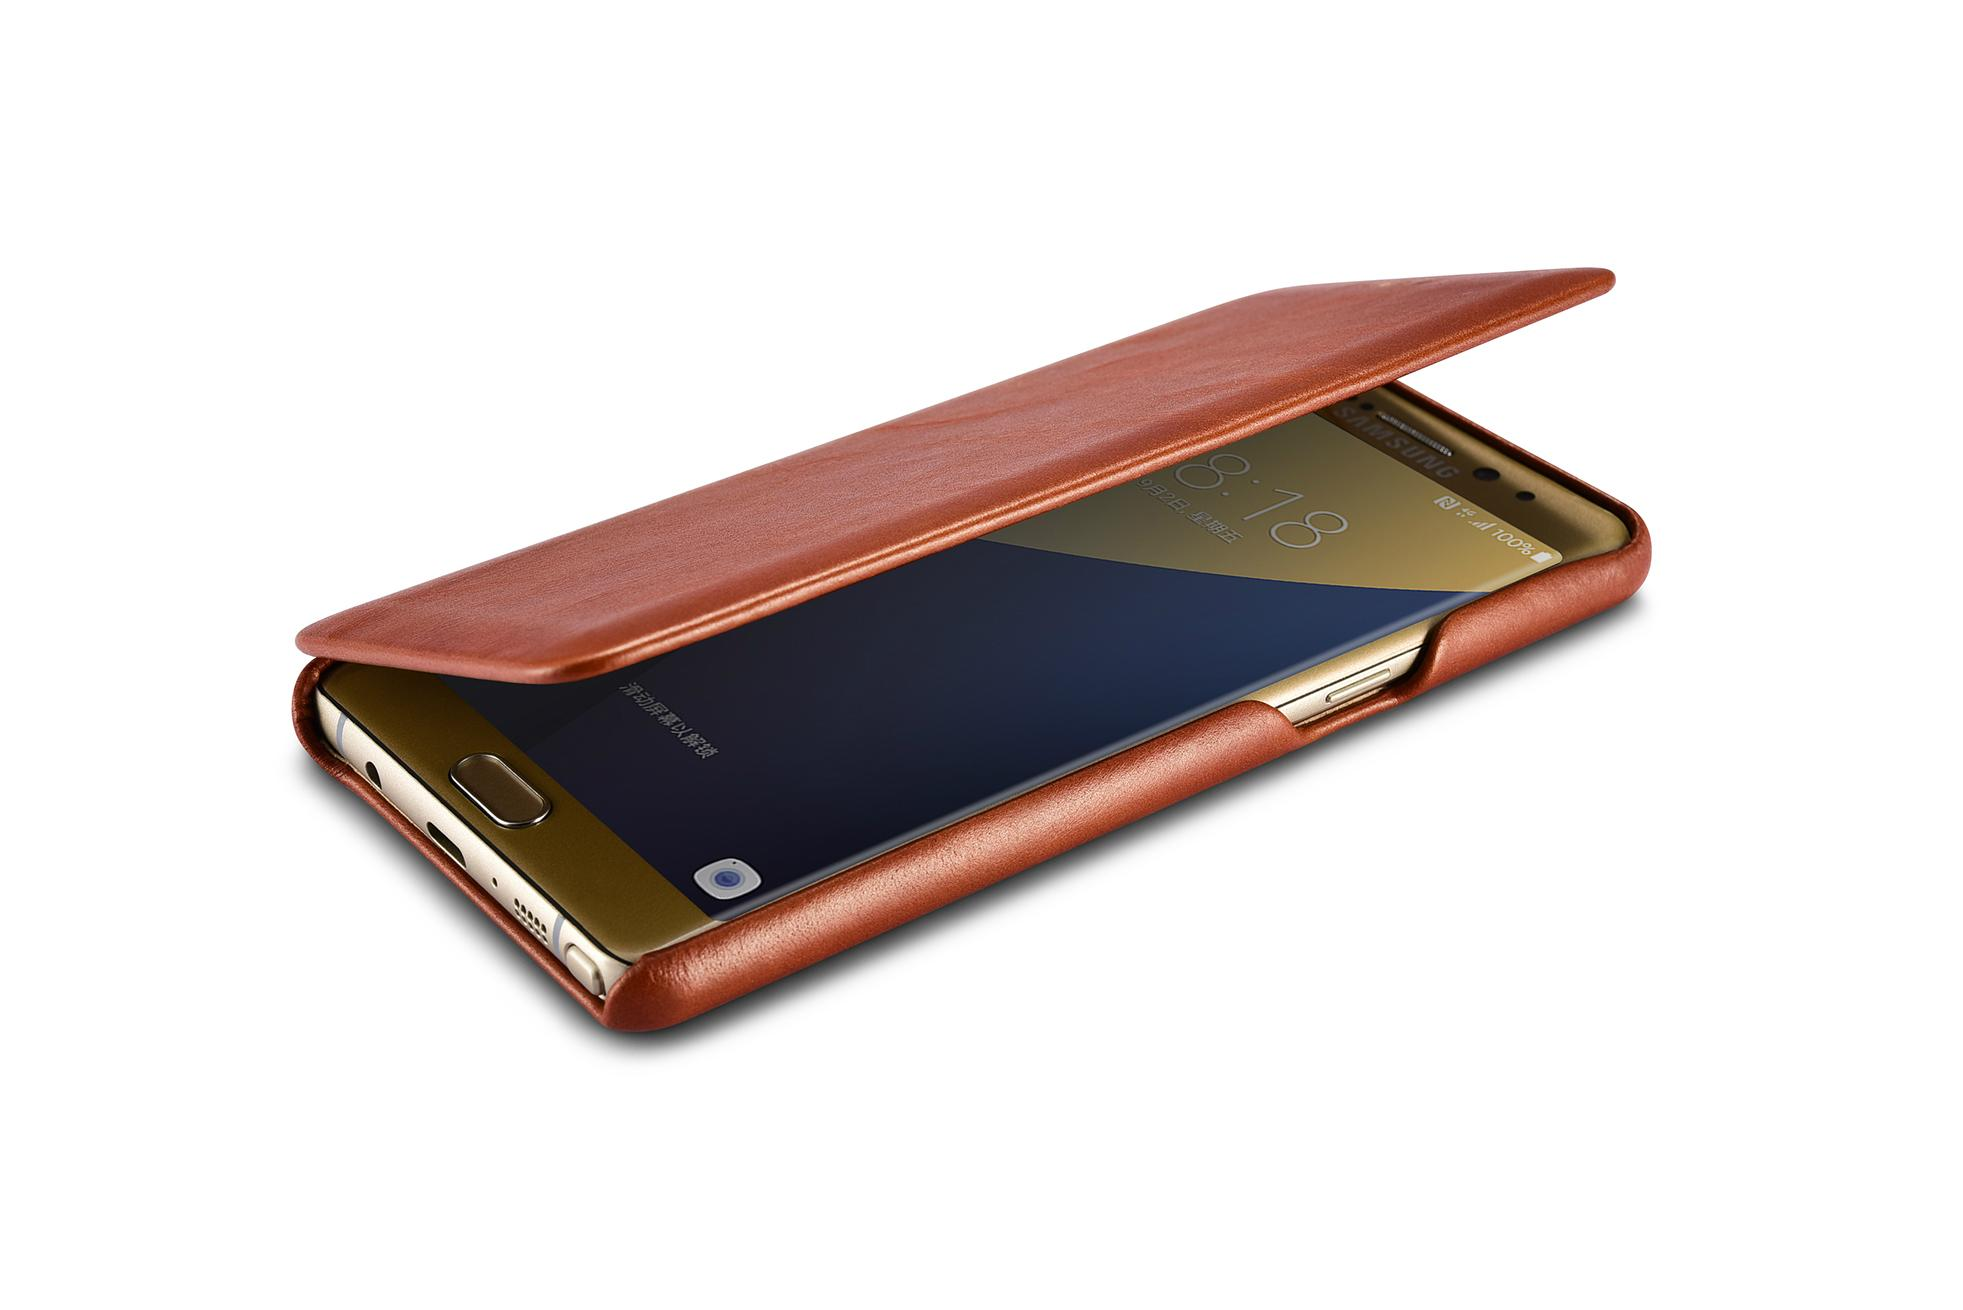 iCarer Samsung Galaxy Note 7 Curved Edge Vintage Side Open Genuine Leather Case 6